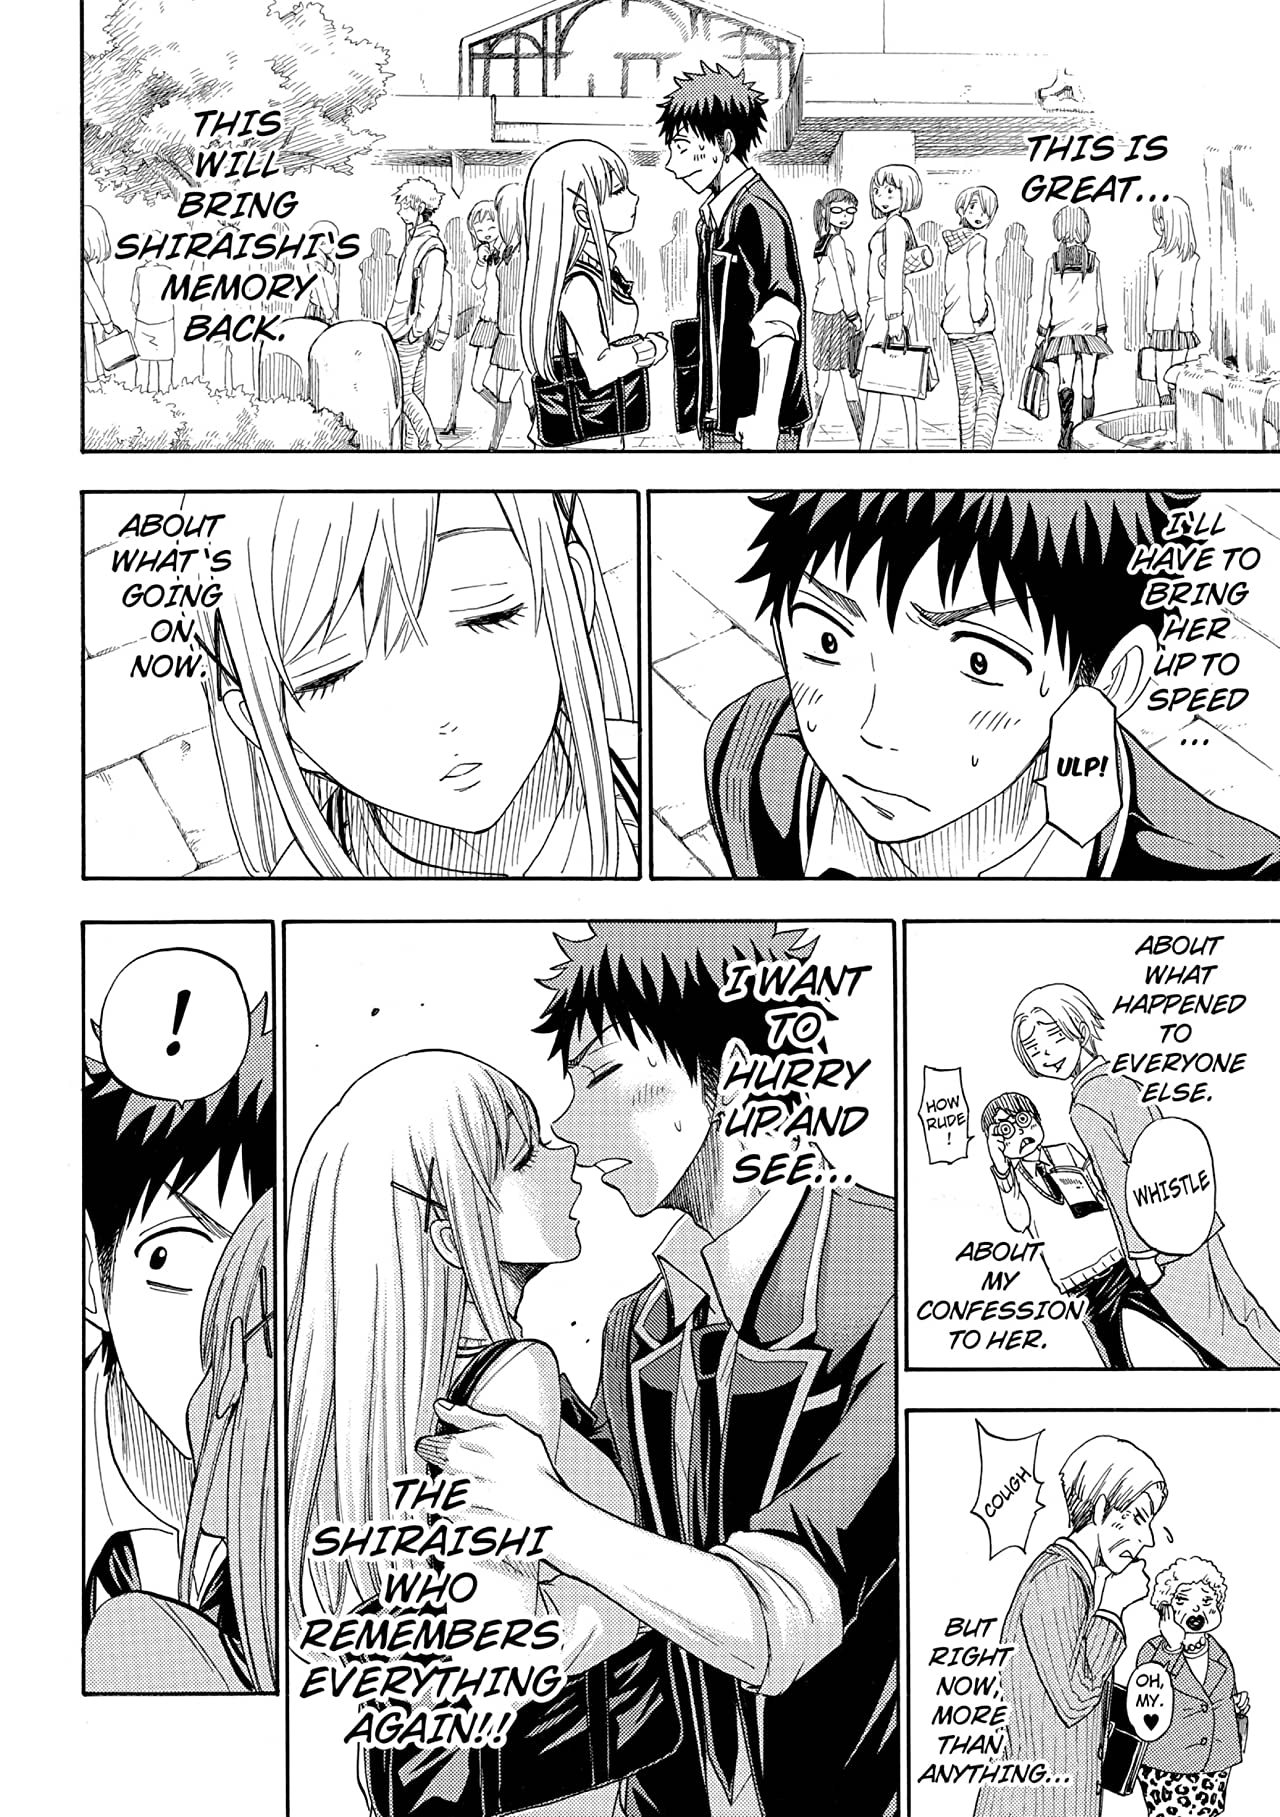 Yamada-kun and the Seven Witches #77